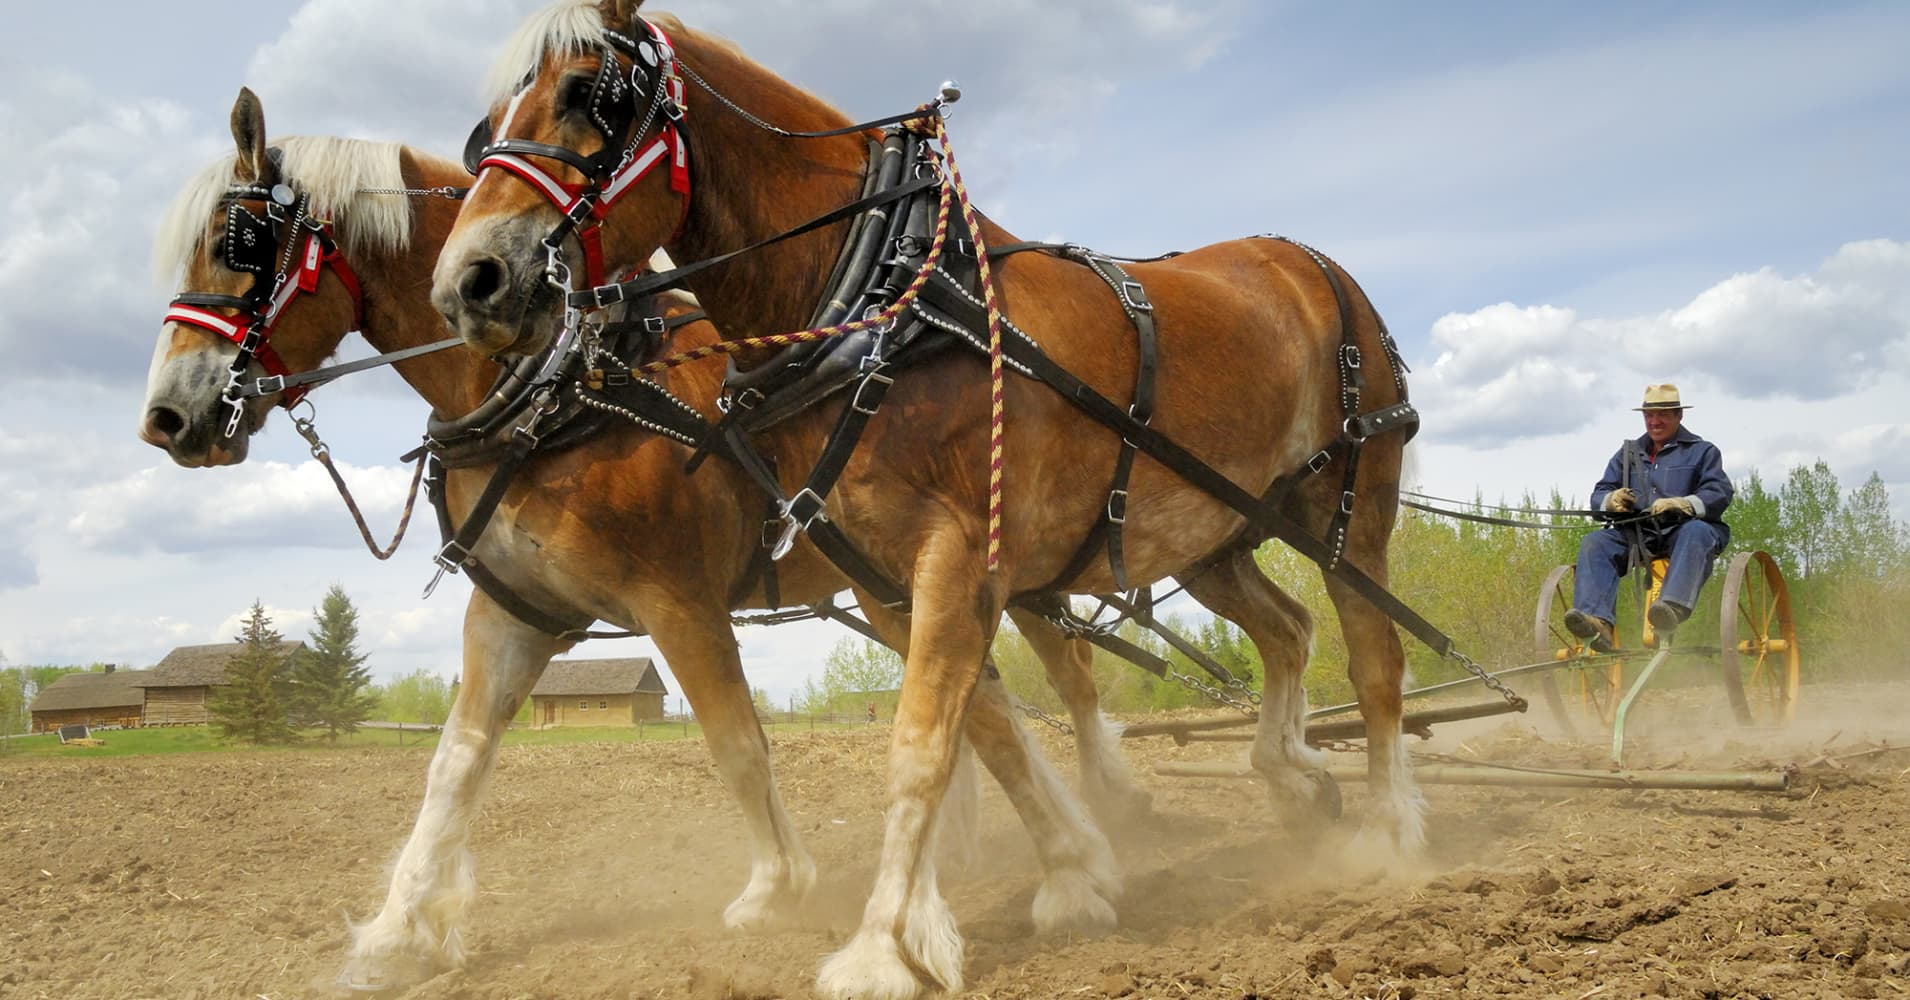 Workhorse: Upcoming Dilution May Hurt Investors - Workhorse Group ...